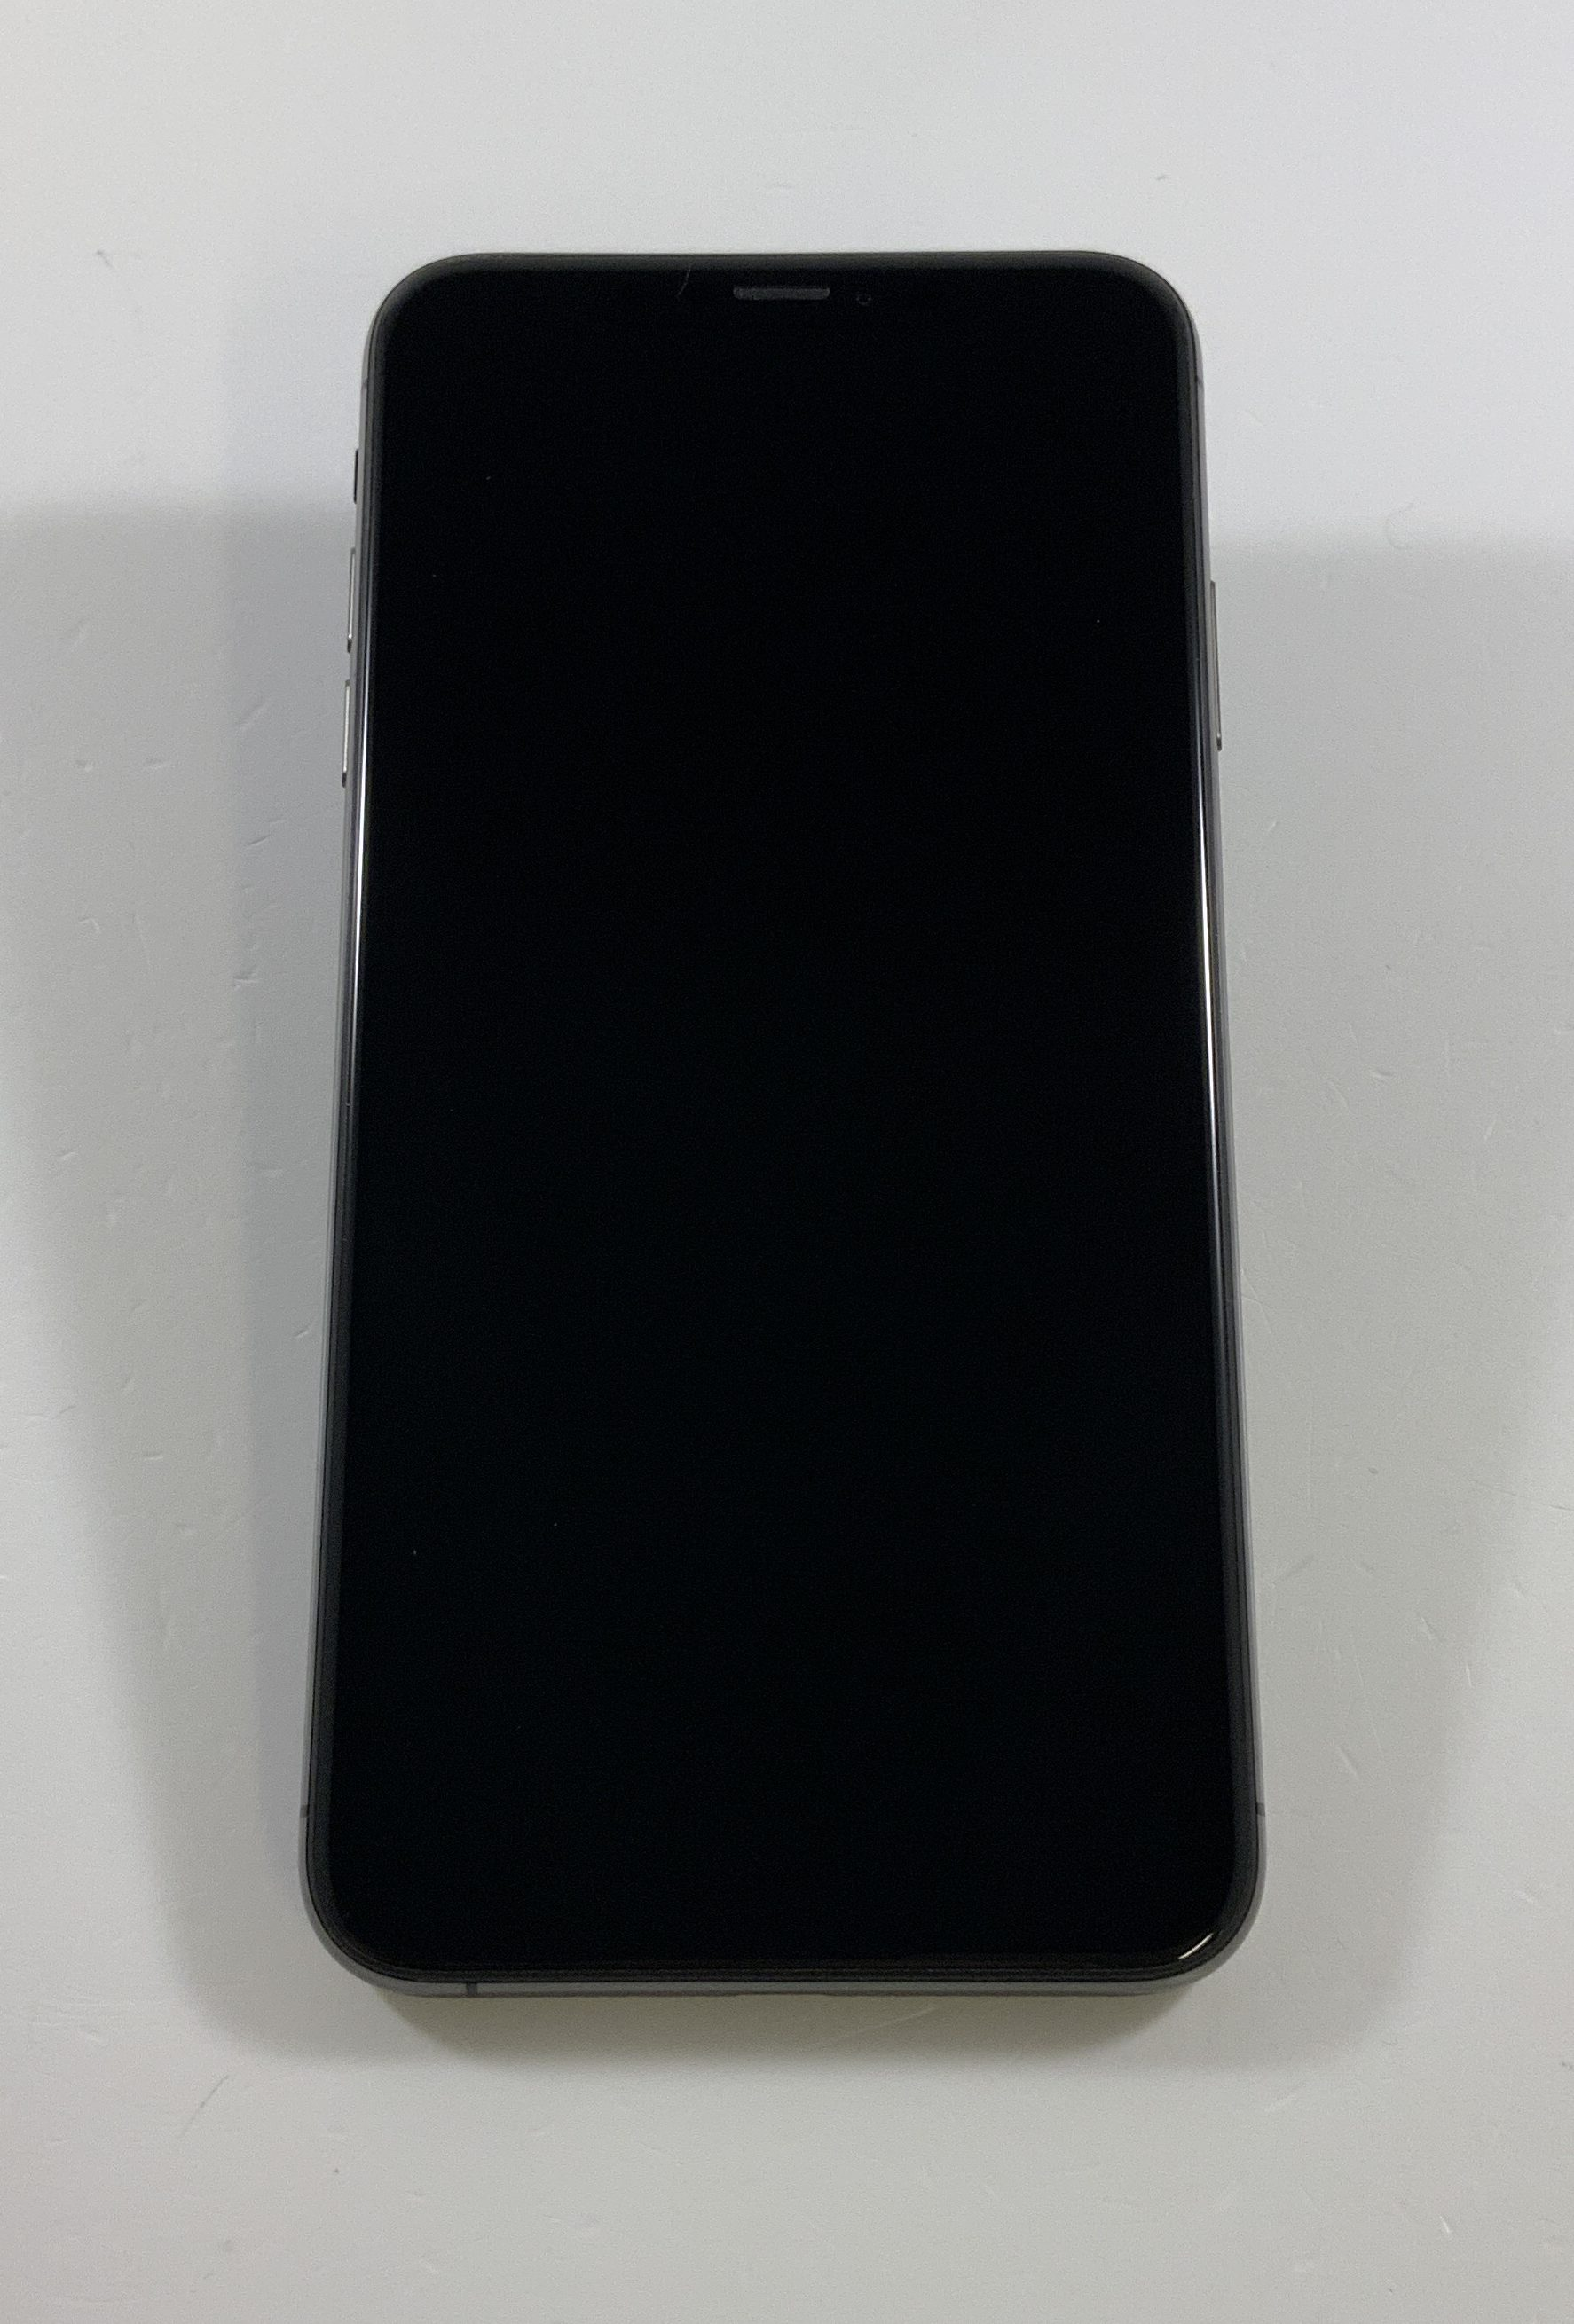 iPhone XS Max 64GB, 64GB, Space Gray, image 1